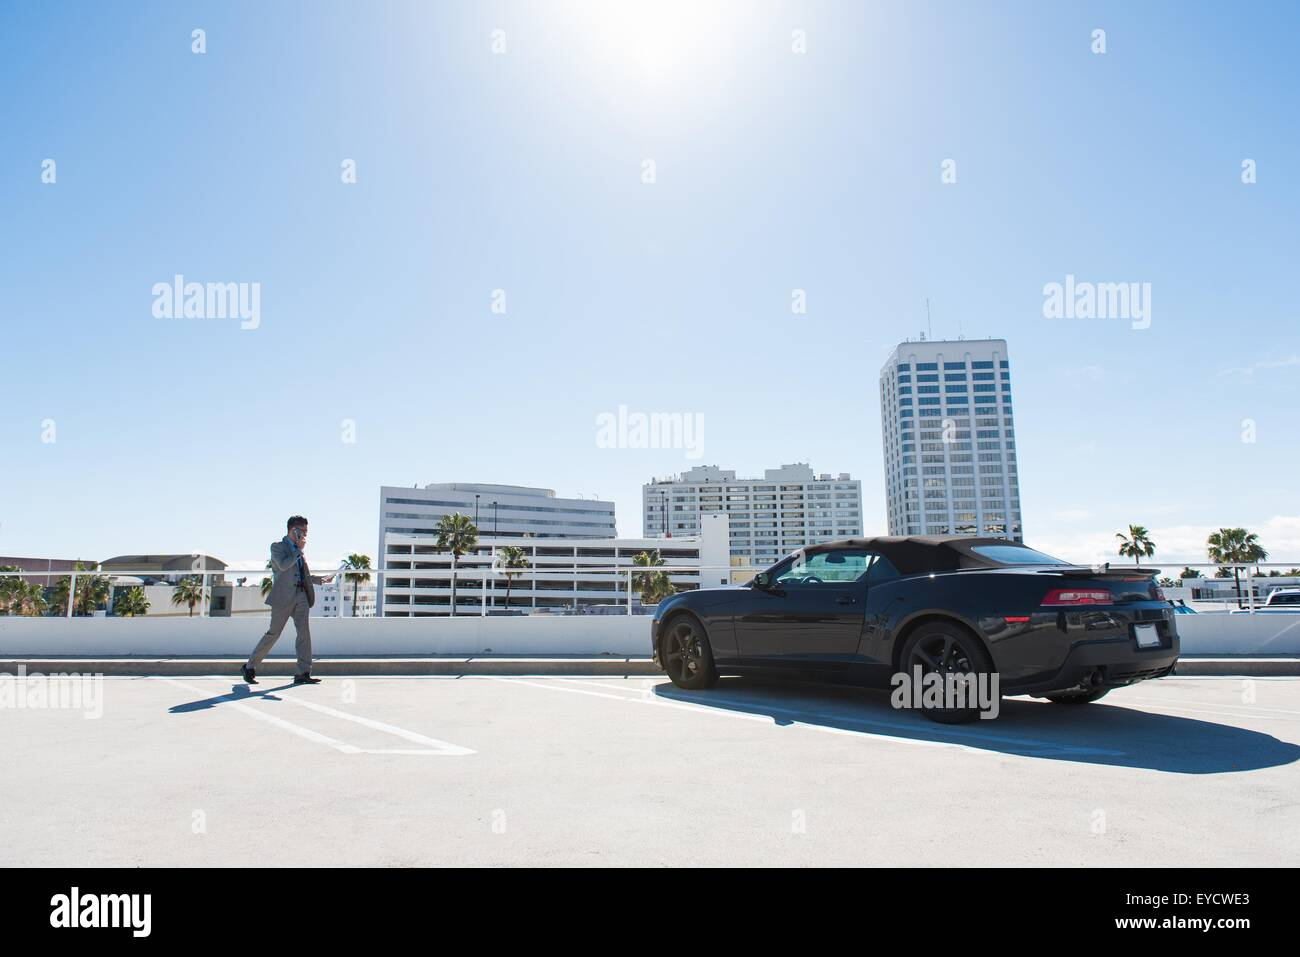 Rooftop Car Park High Resolution Stock Photography And Images Alamy